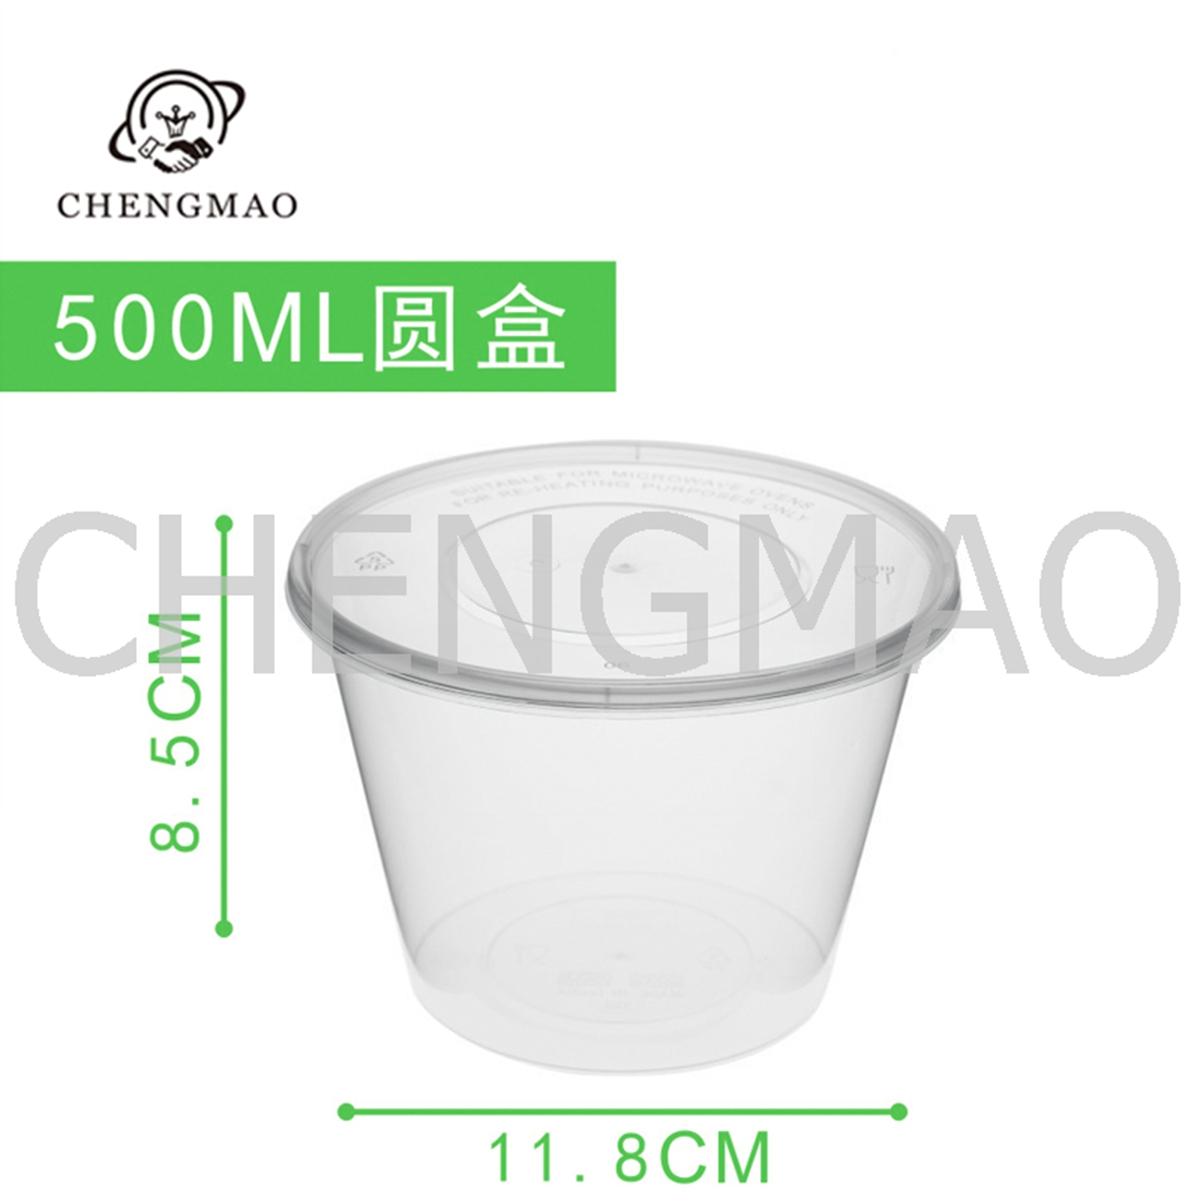 500ML 450Pcs Black or Transparent Plastic Fast Food Disposable Food Containers Bento Lunch Box Circular